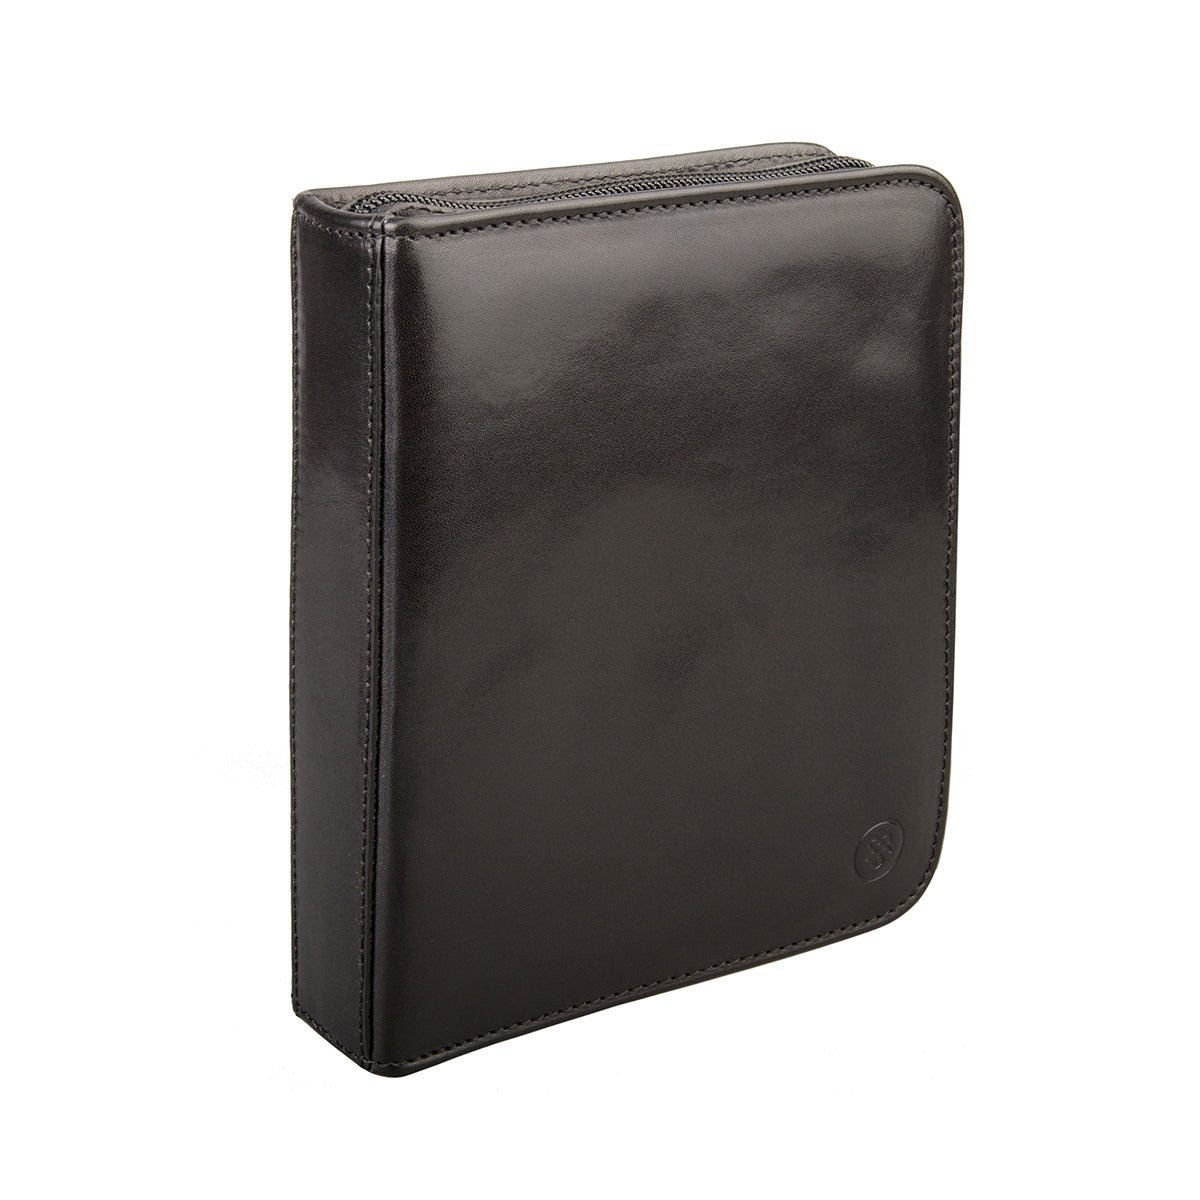 Image 3 of the 'Atella' Black Veg-Tanned Leather Watch Presentation Case